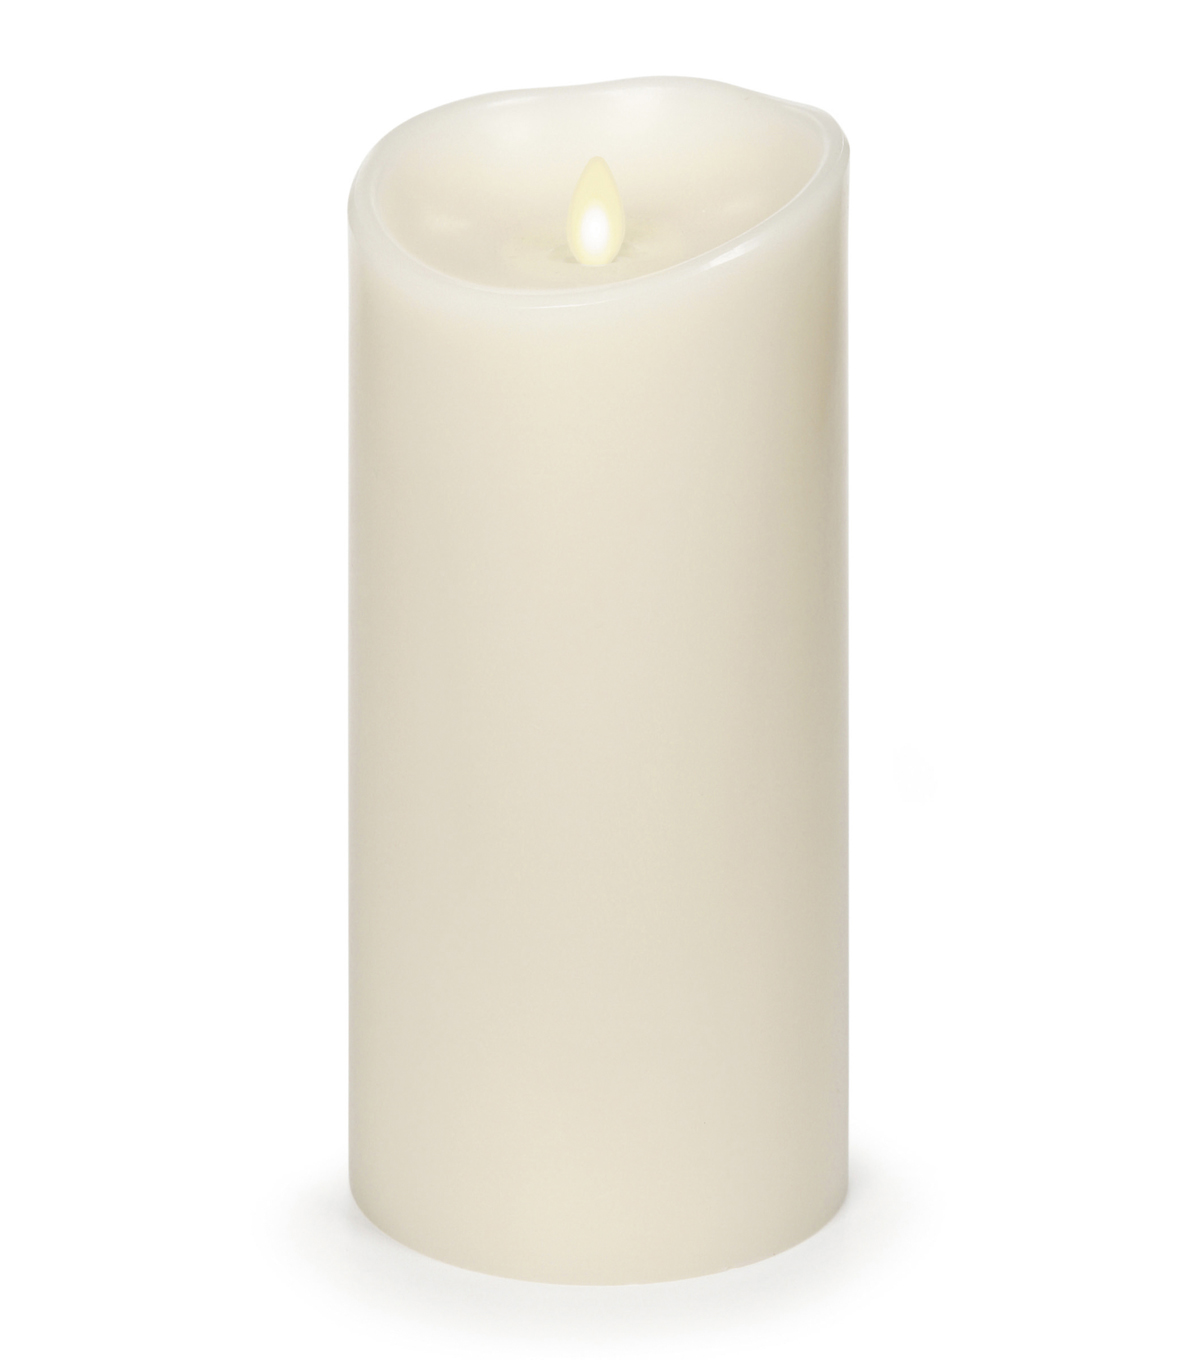 Luminara Candle & Light Collection Luminara 9 In Ivory Timer Vanilla Scent